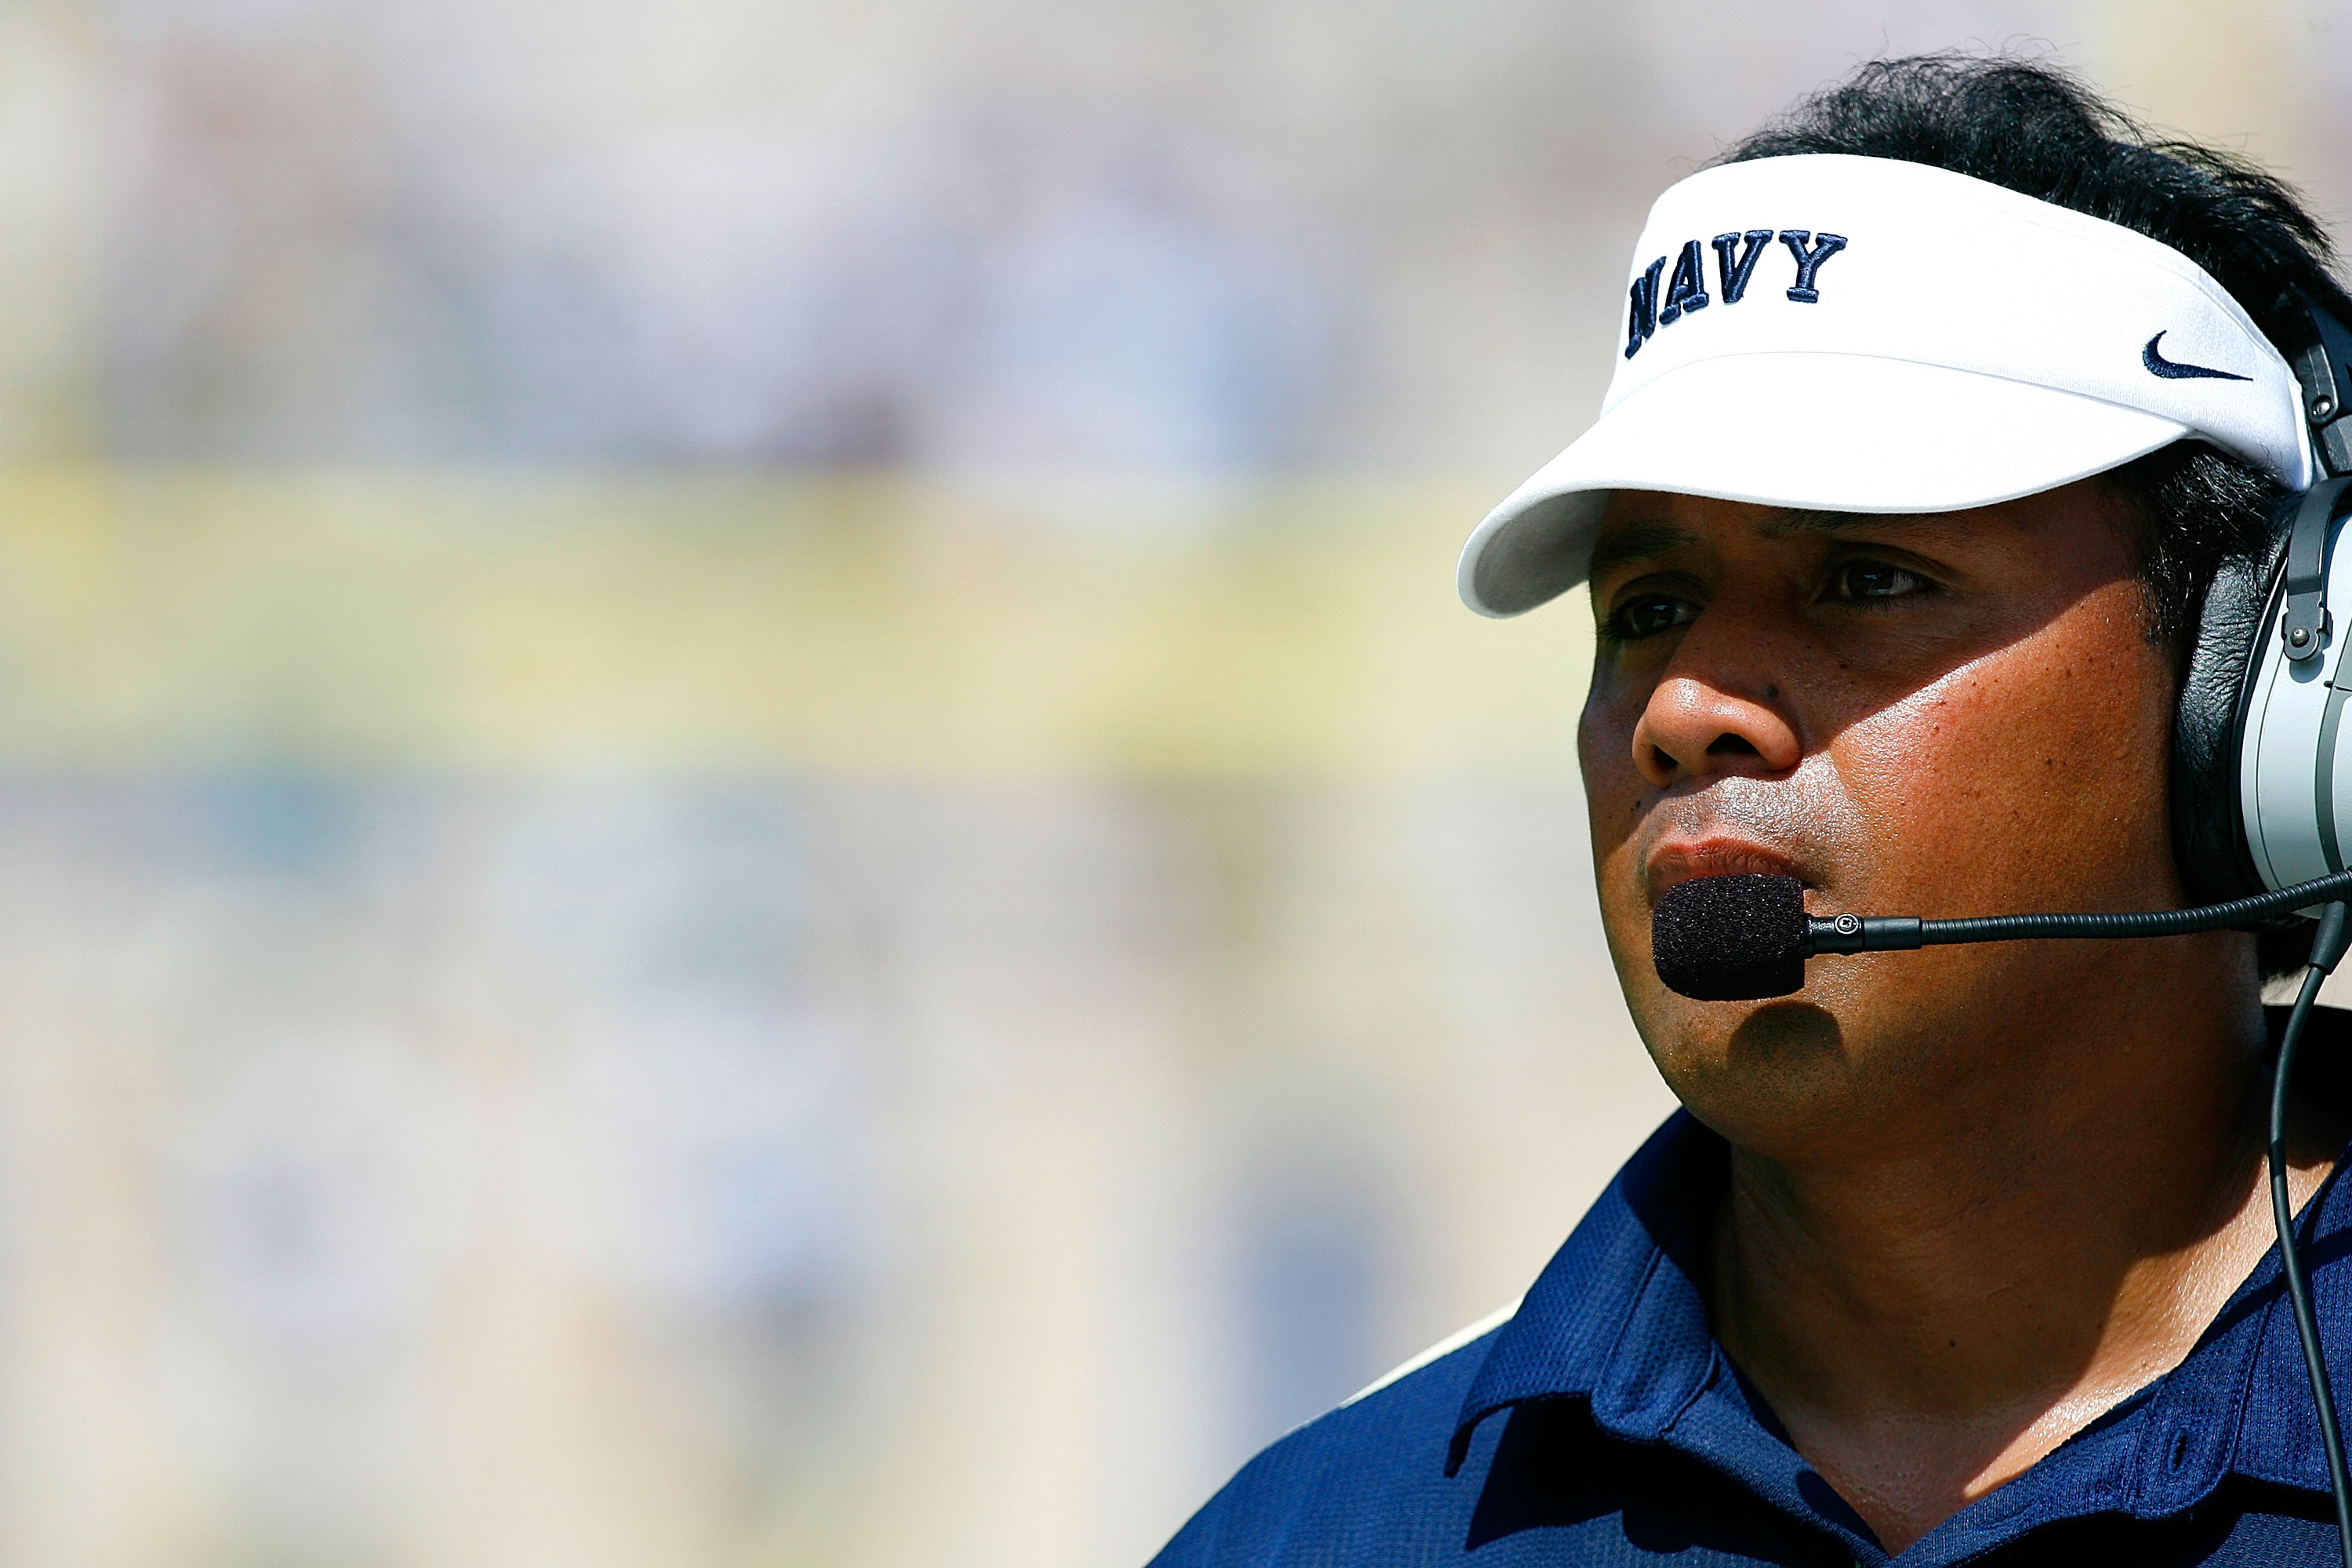 DURHAM, NC - SEPTEMBER 13:  Head coach Ken Niumatalolo of the Navy Midshipmen looks on against the Duke Blue Devils during the game at Wallace Wade Stadium on September 13, 2008 in Durham, North Carolina.  (Photo by Kevin C. Cox/Getty Images)